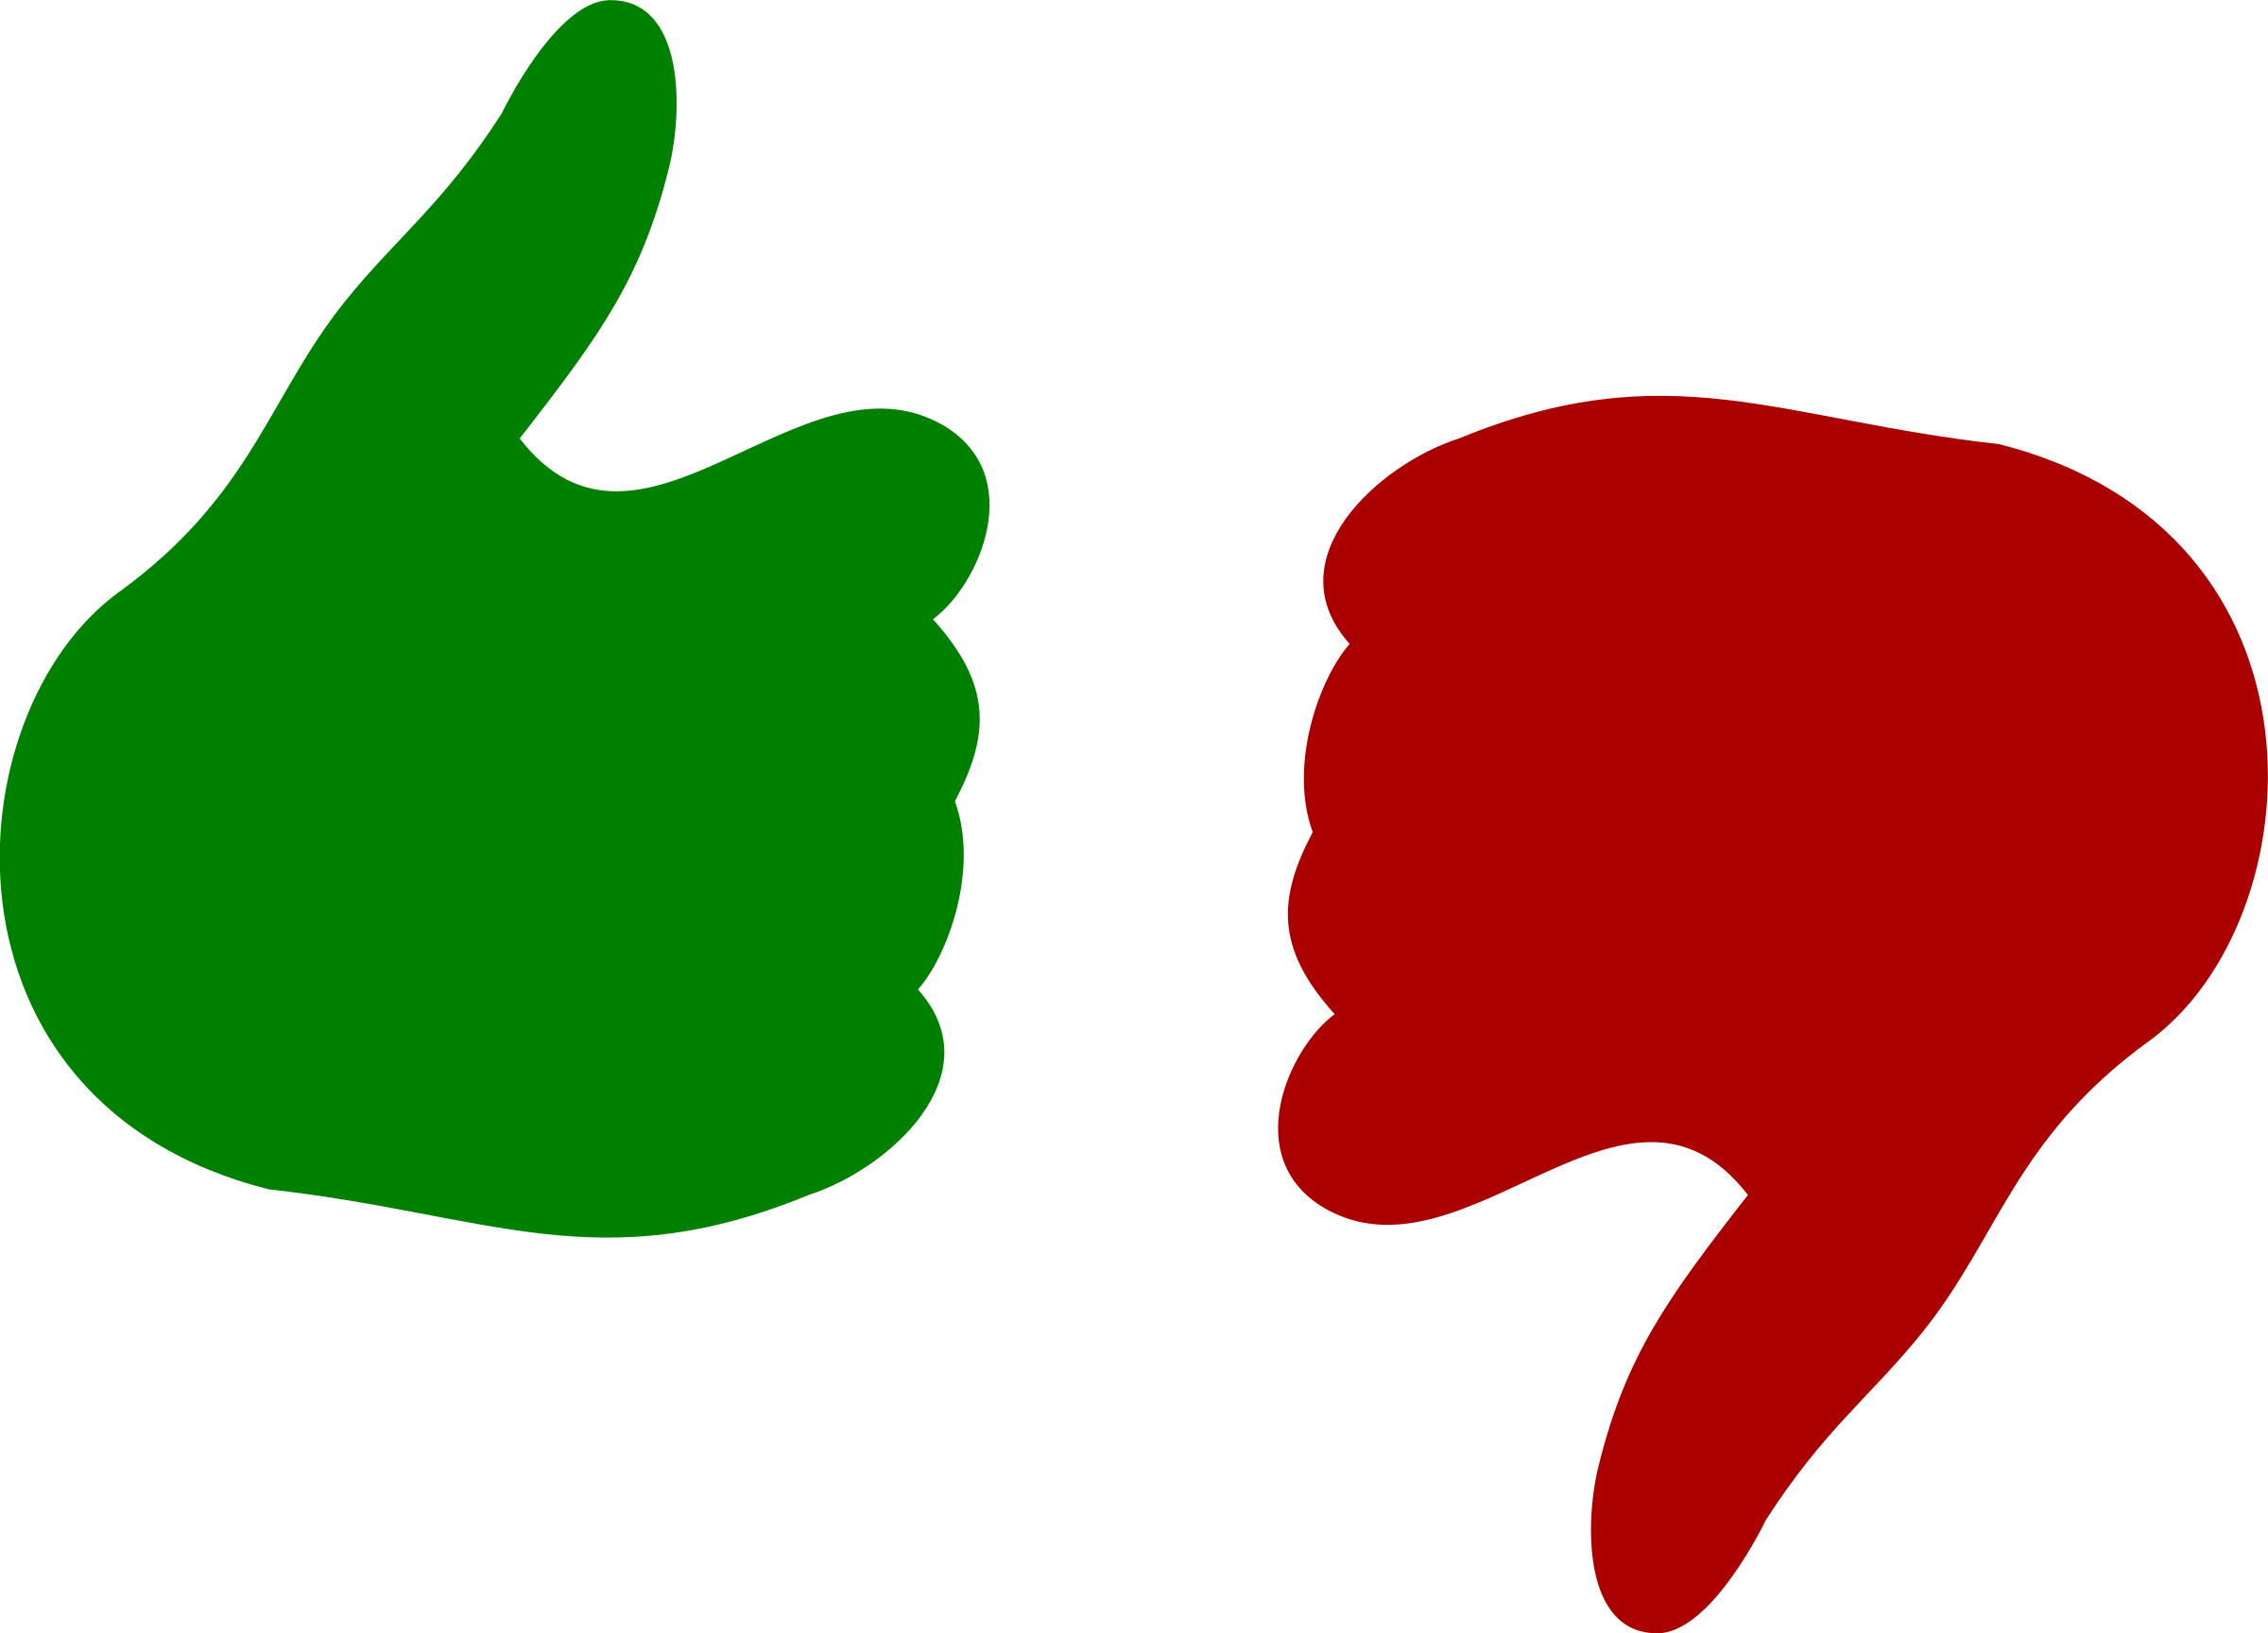 Thumbs Down Image - ClipArt Best